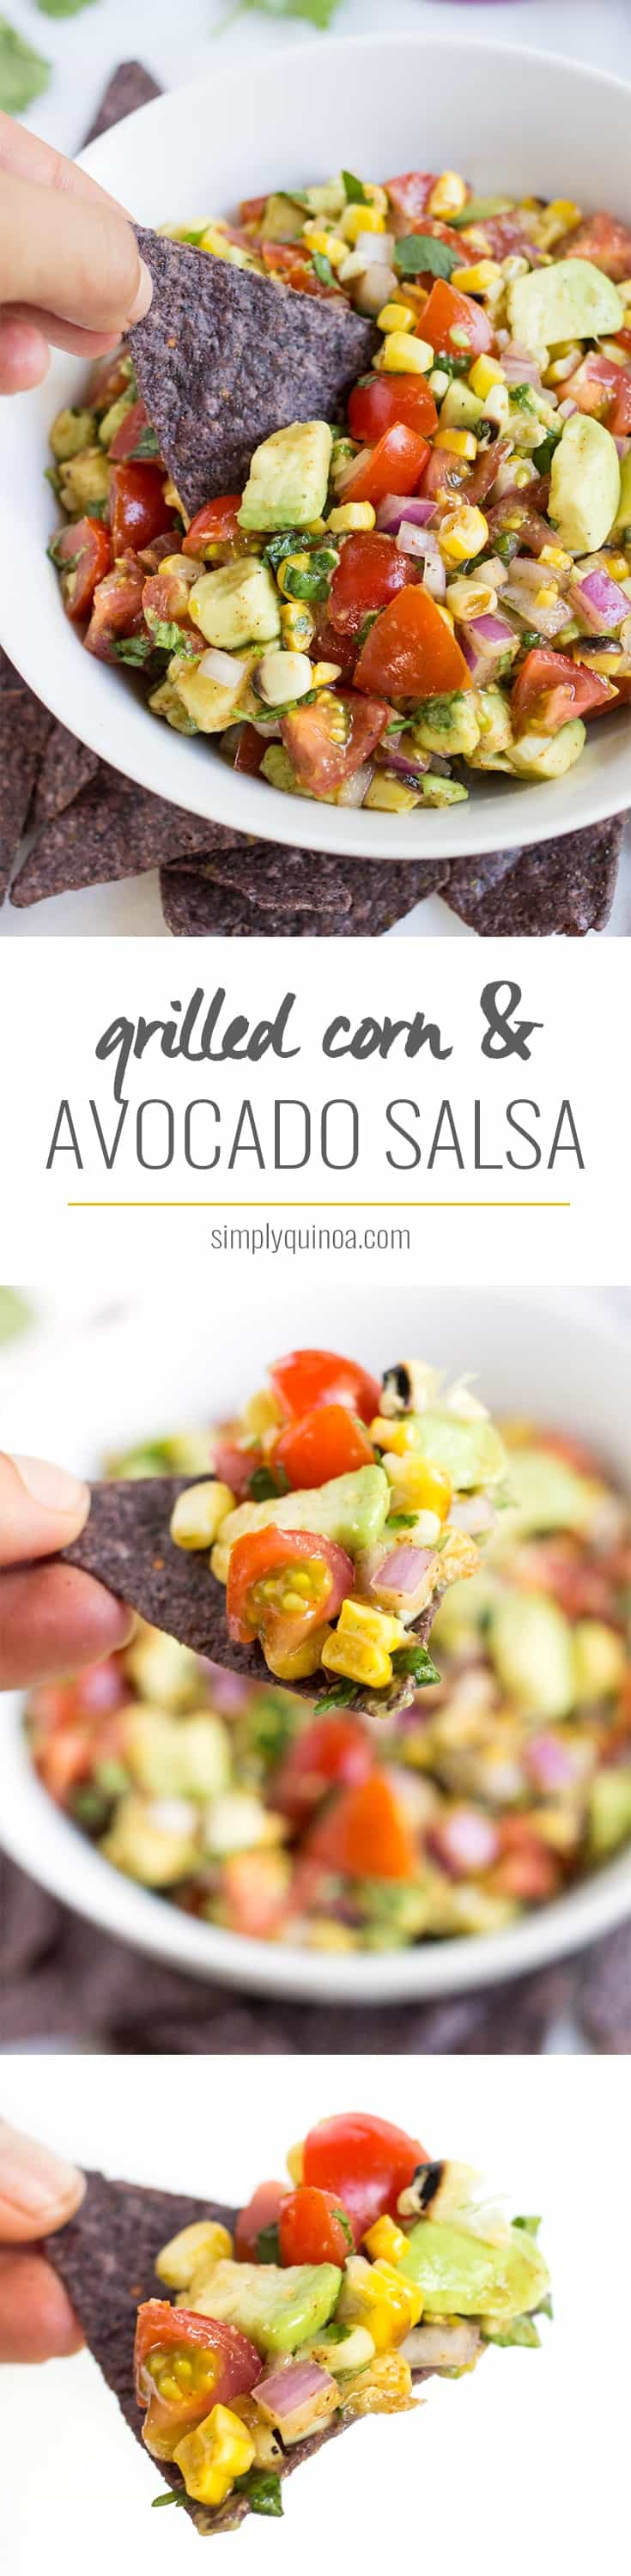 GRILLED CORN + AVOCADO SALSA -- the perfect dip that combines char grilled corn with buttery avocados. Use this as a dip, on top of tacos or served over eggs!